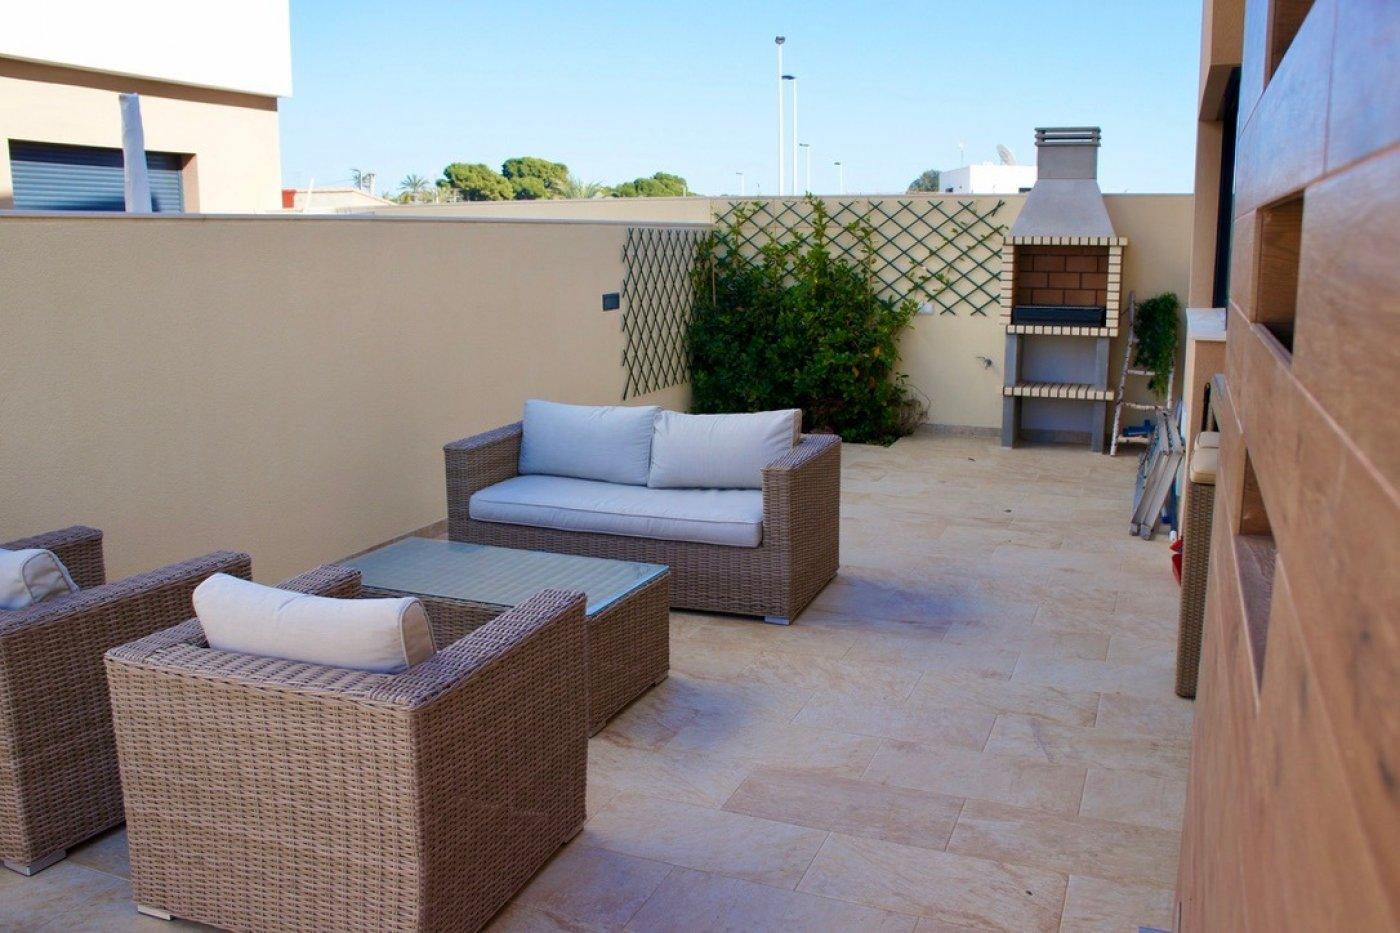 Gallery Image 19 of Key ready detached  3 bed, 3 bath villa with swimming pool at a very competitive price